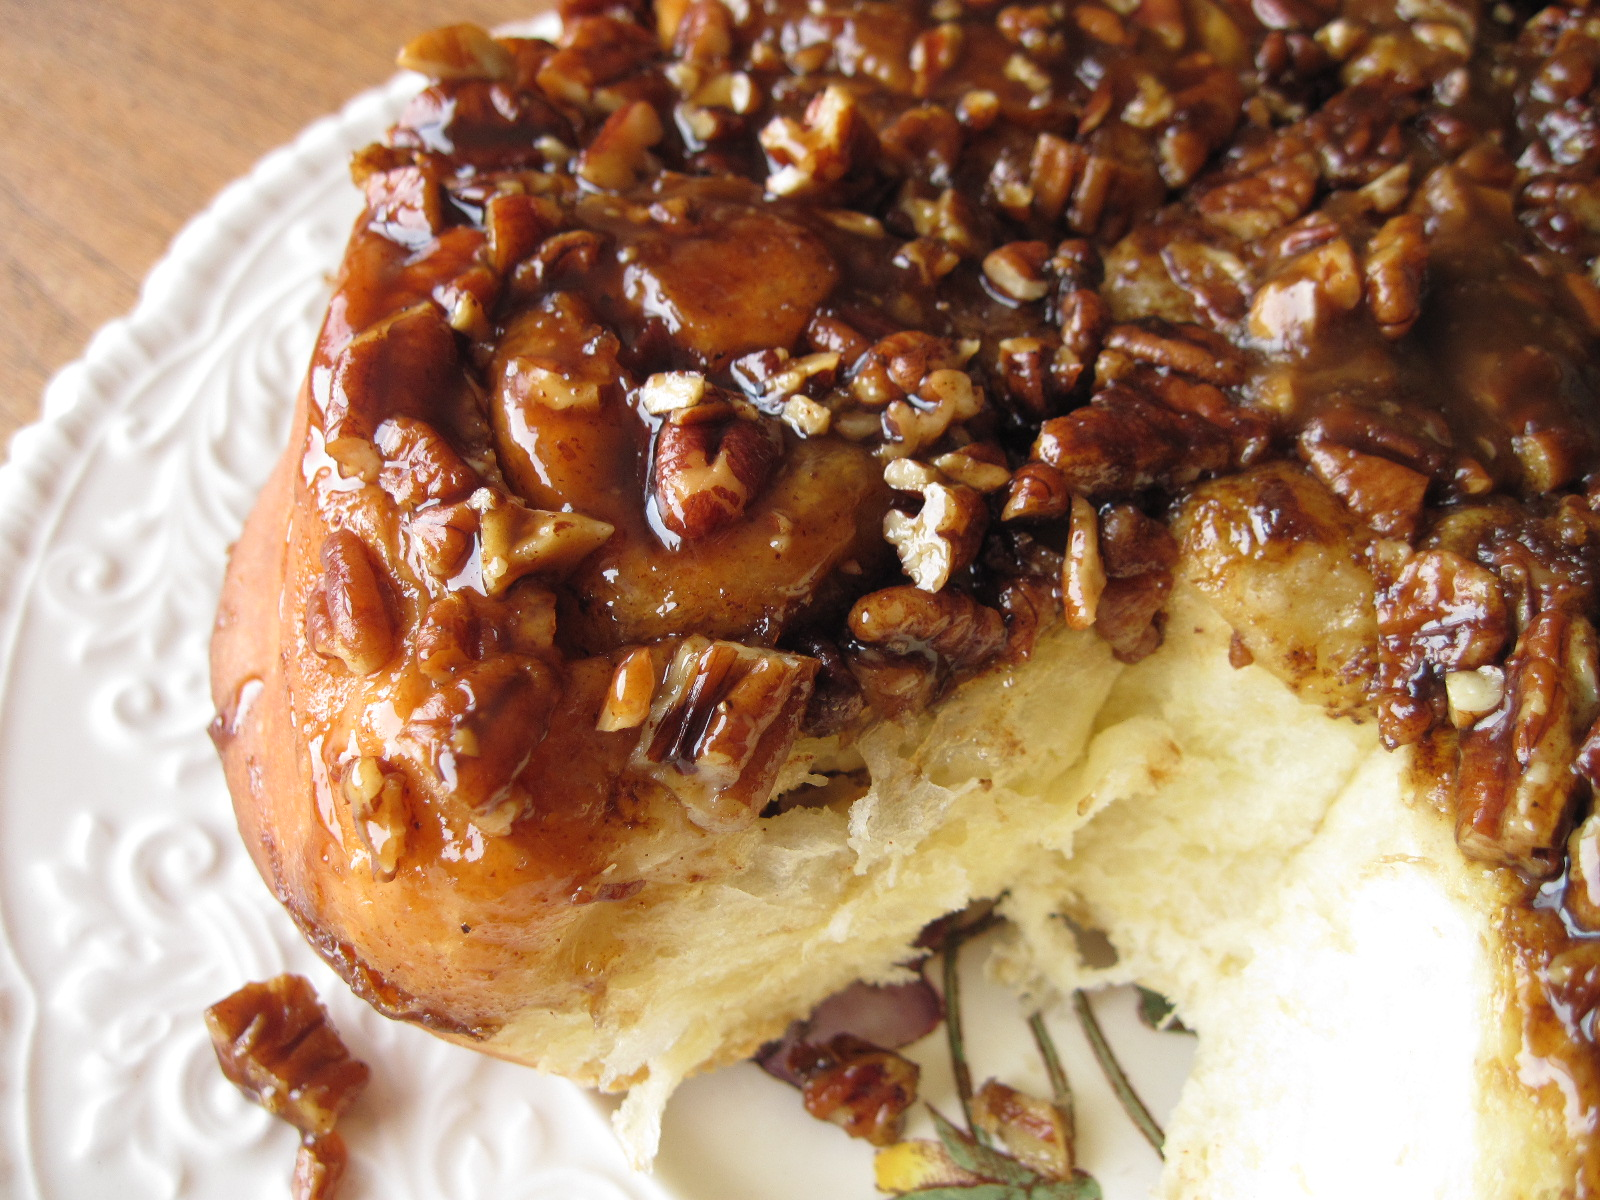 Here they are… the caramel pecan sticky buns that started my ...